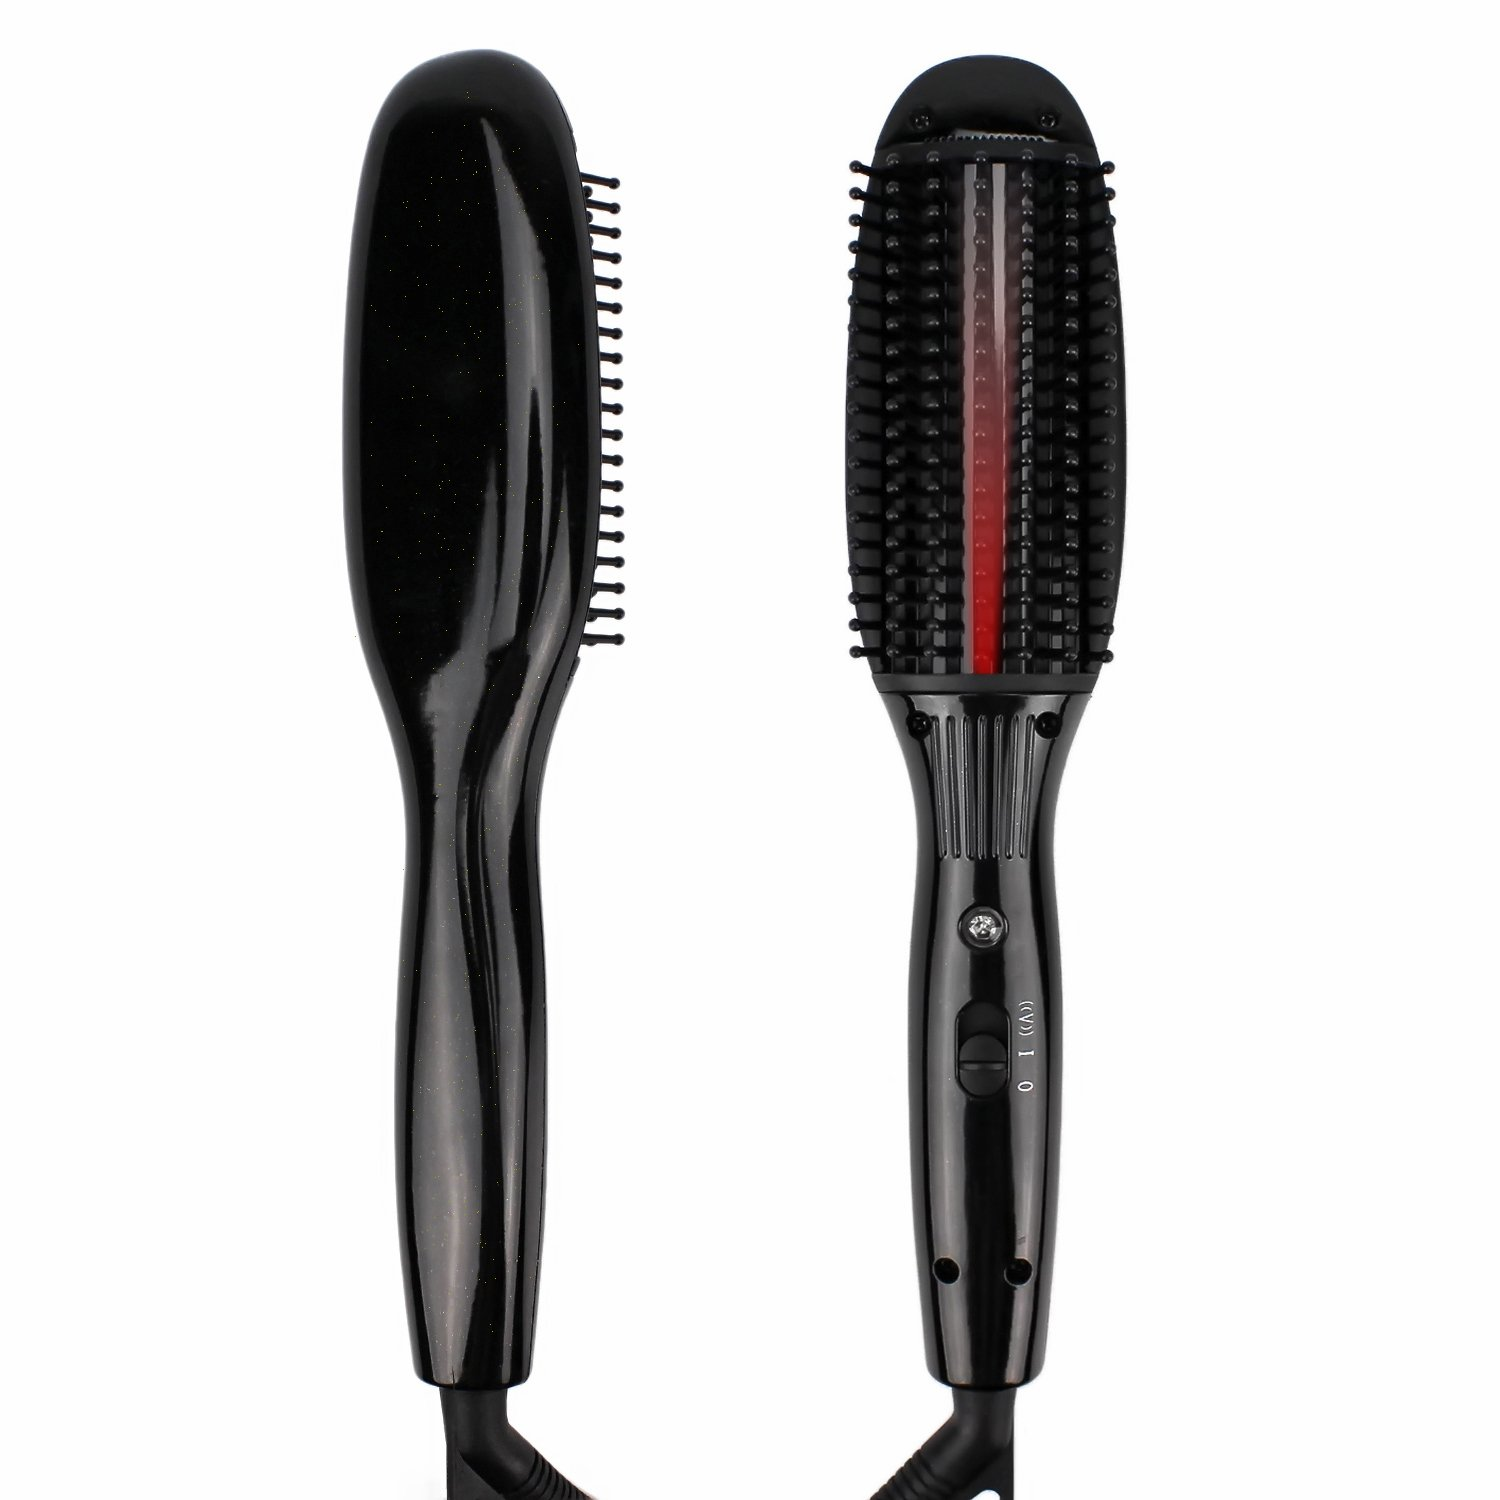 Emovendo Hot Air Vibrating Hair Straightening Brush - Jet Black